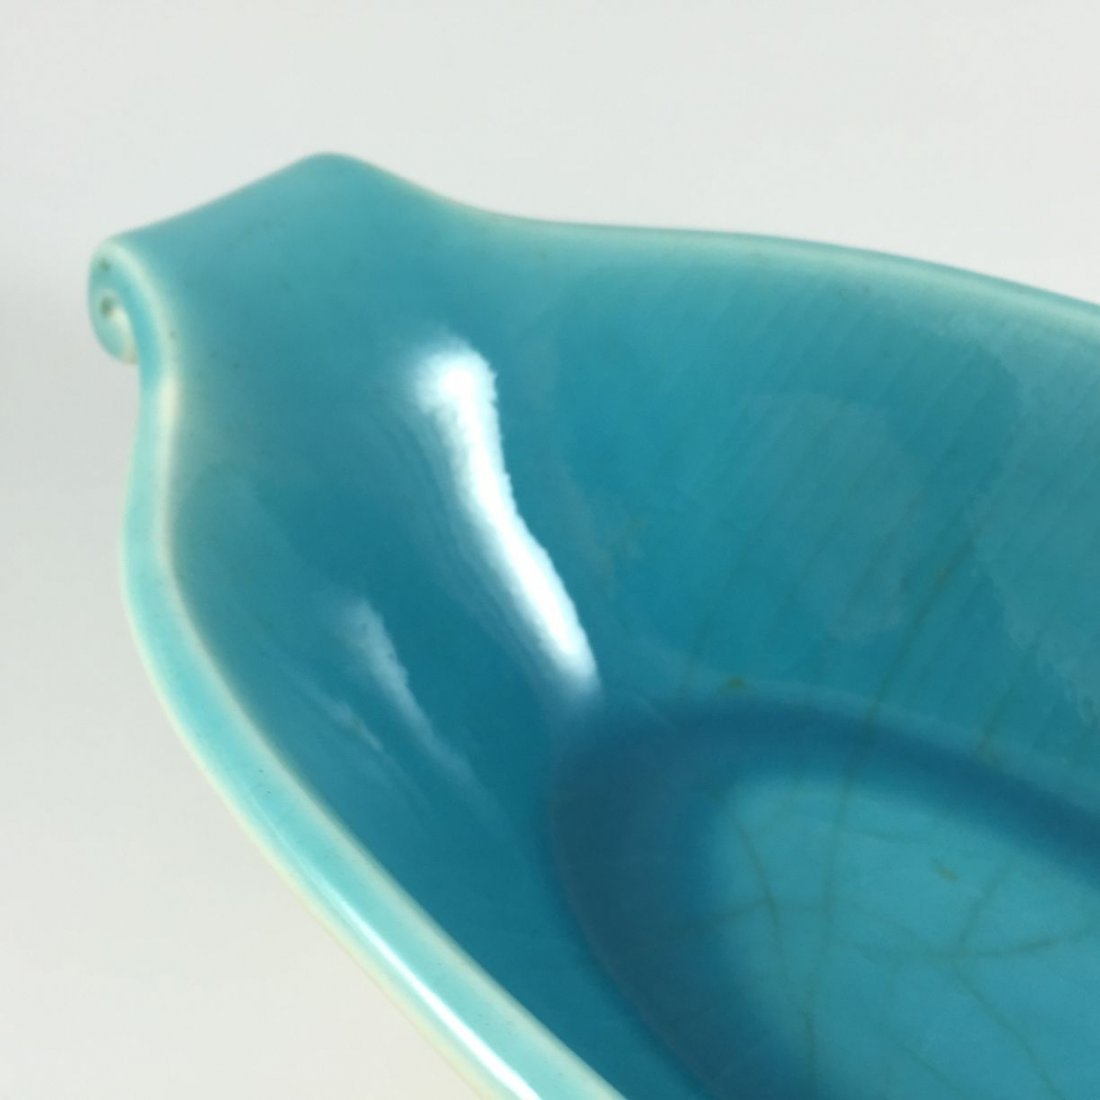 Lovely Rookwood Oval Turquoise Centerpiece Bowl - 10